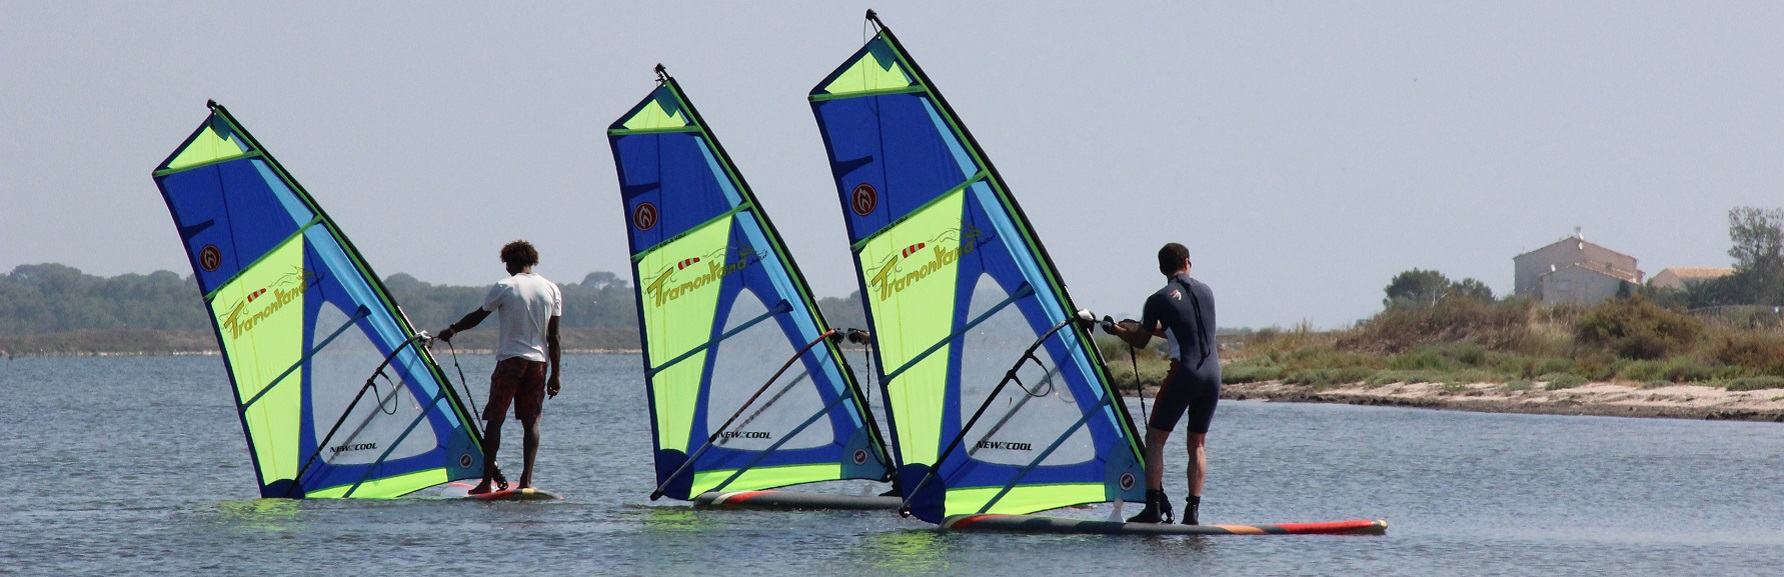 Tramontana windsurfing and windfoil courses and lessons